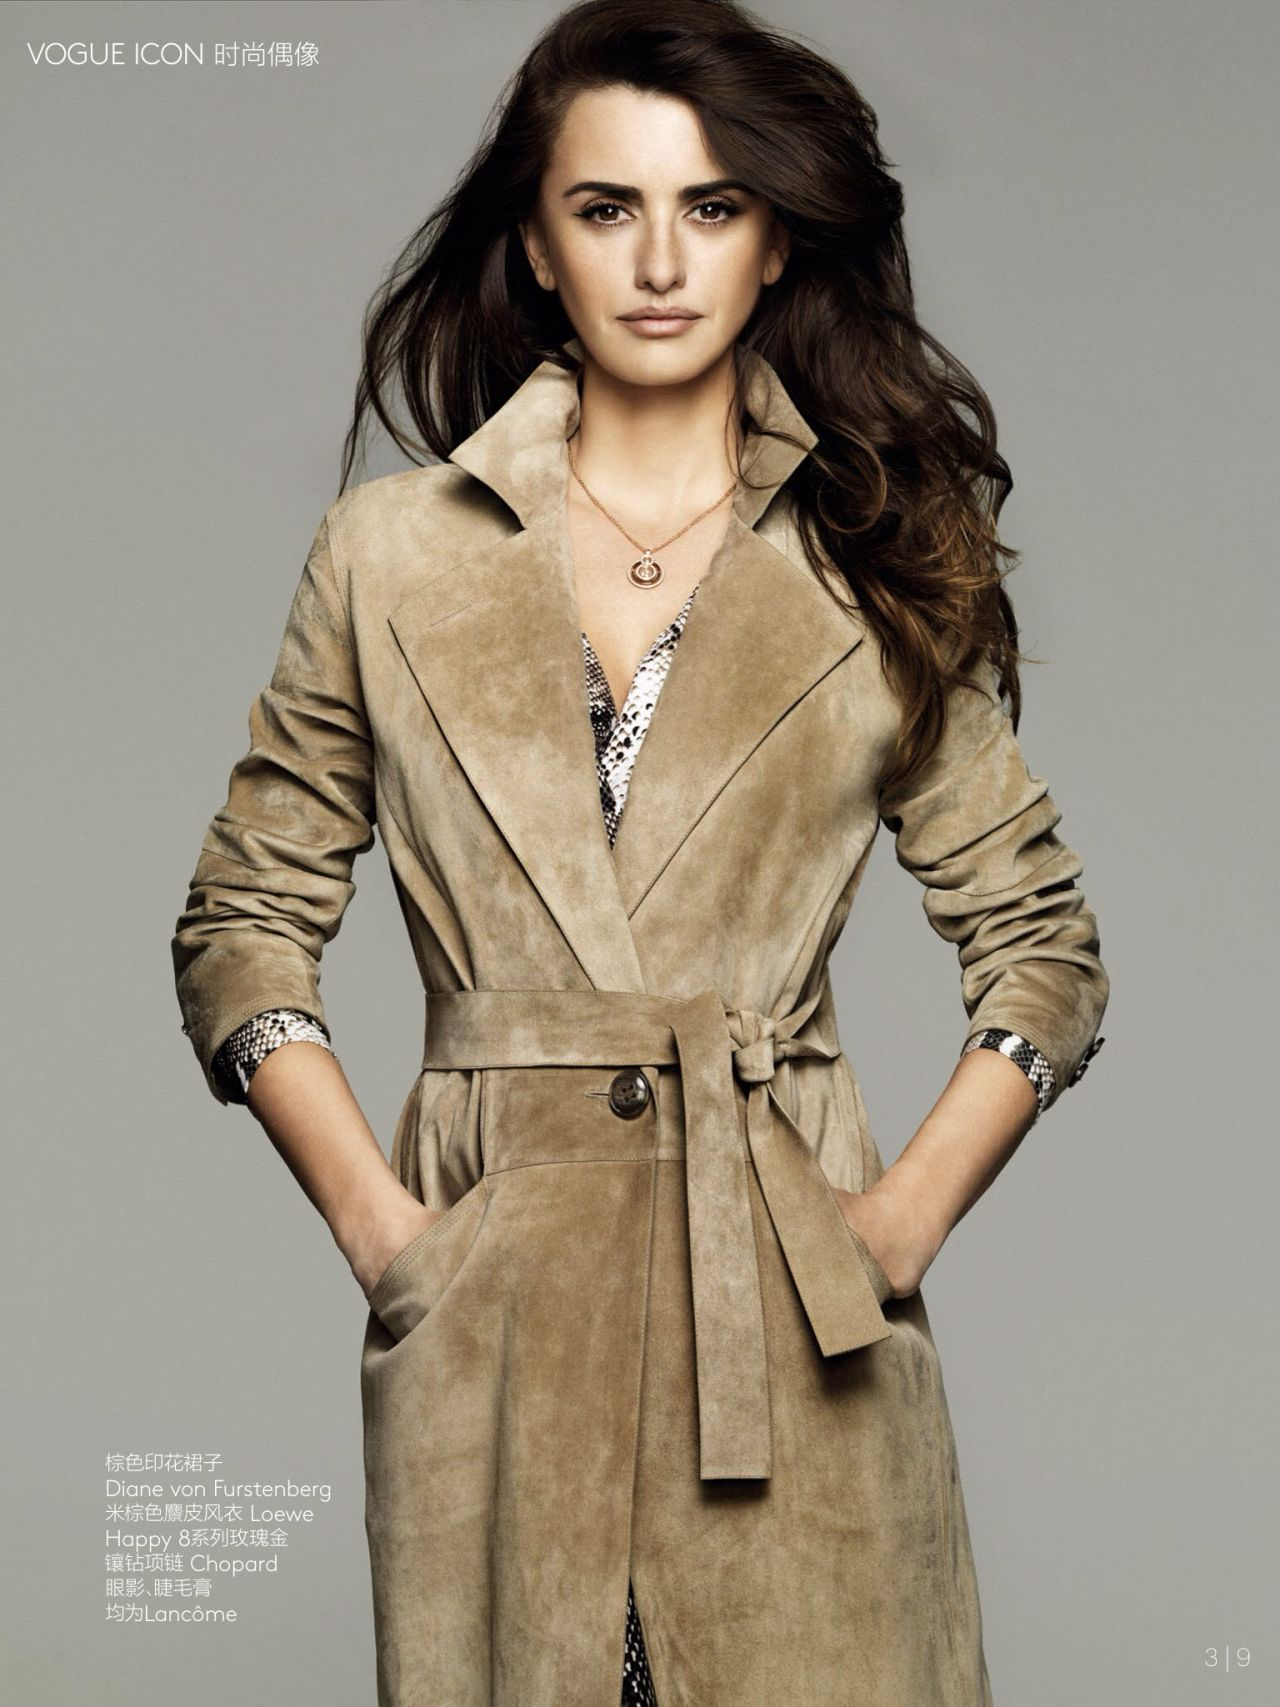 Penelope Cruz - VOGUE Magazine (China) Collections - February Extra 2014 Issue